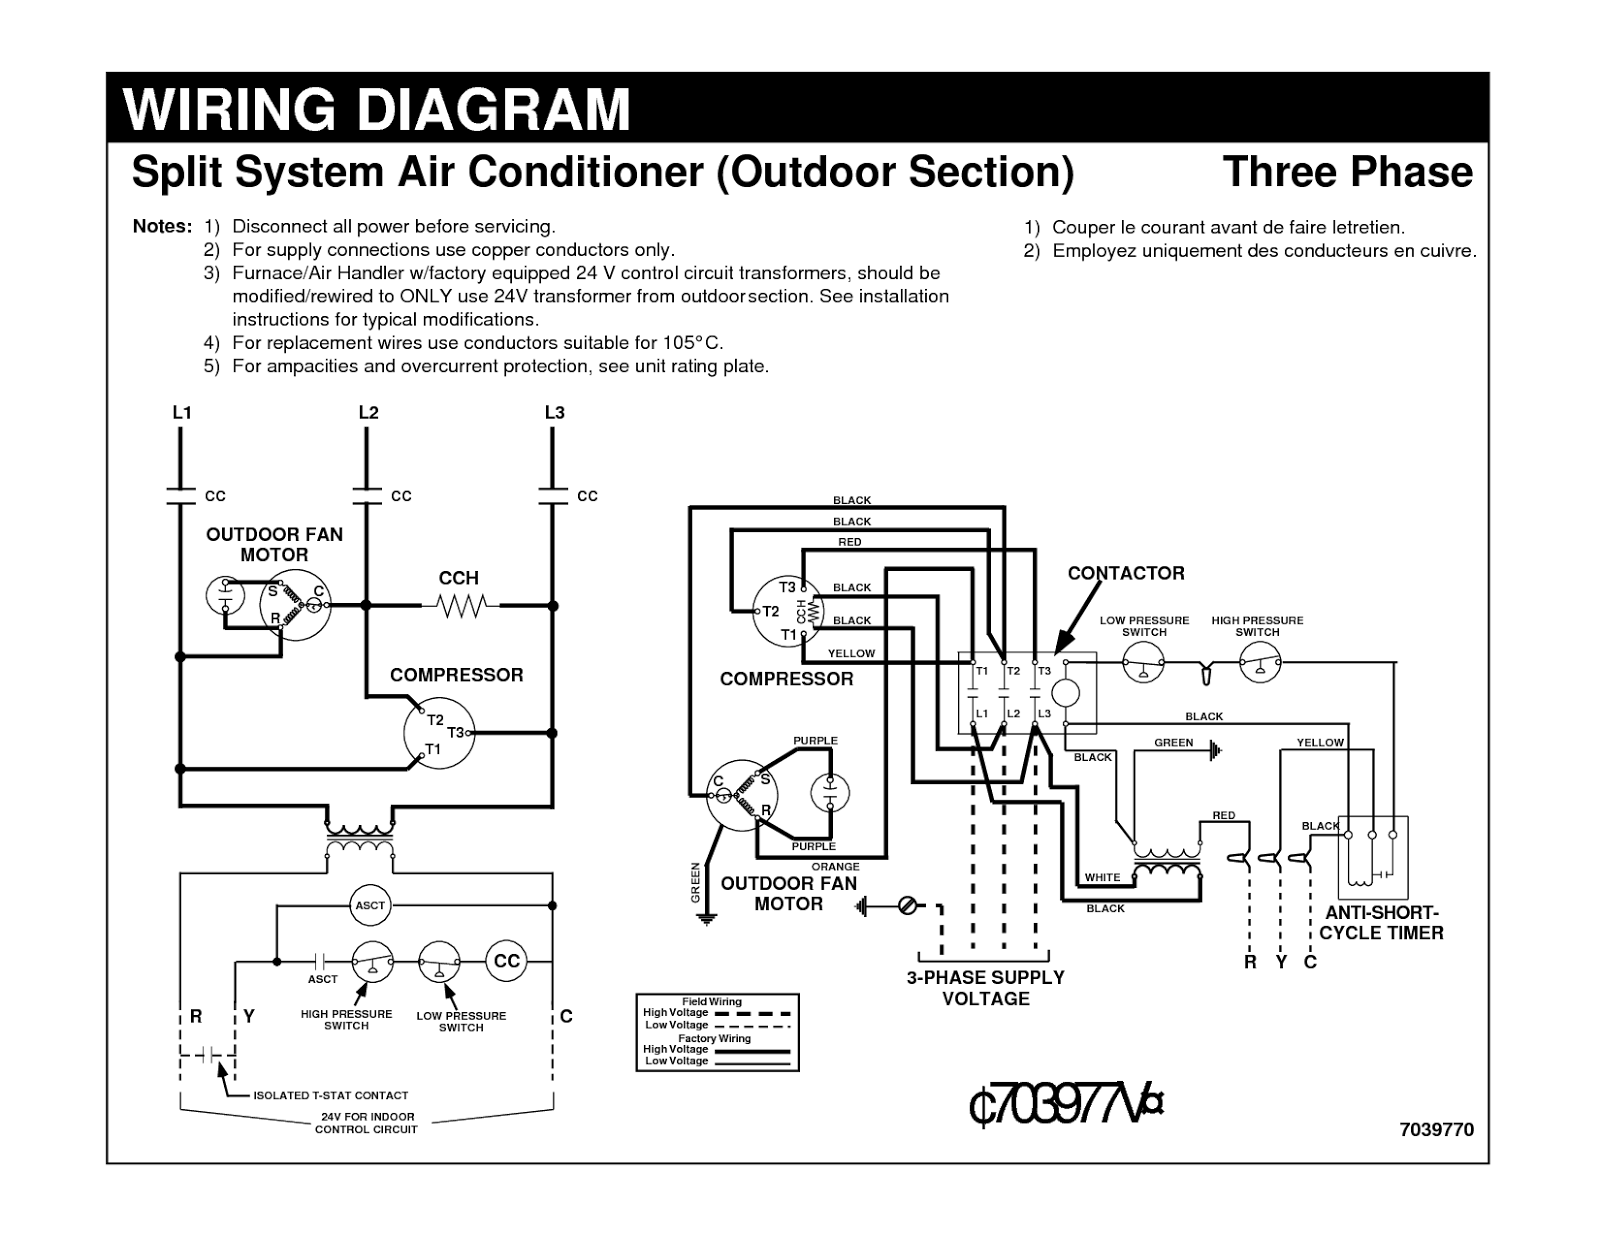 wiring+diagram+in+the+user+manual electrical wiring diagrams for air conditioning systems part one hvac wiring diagram at crackthecode.co